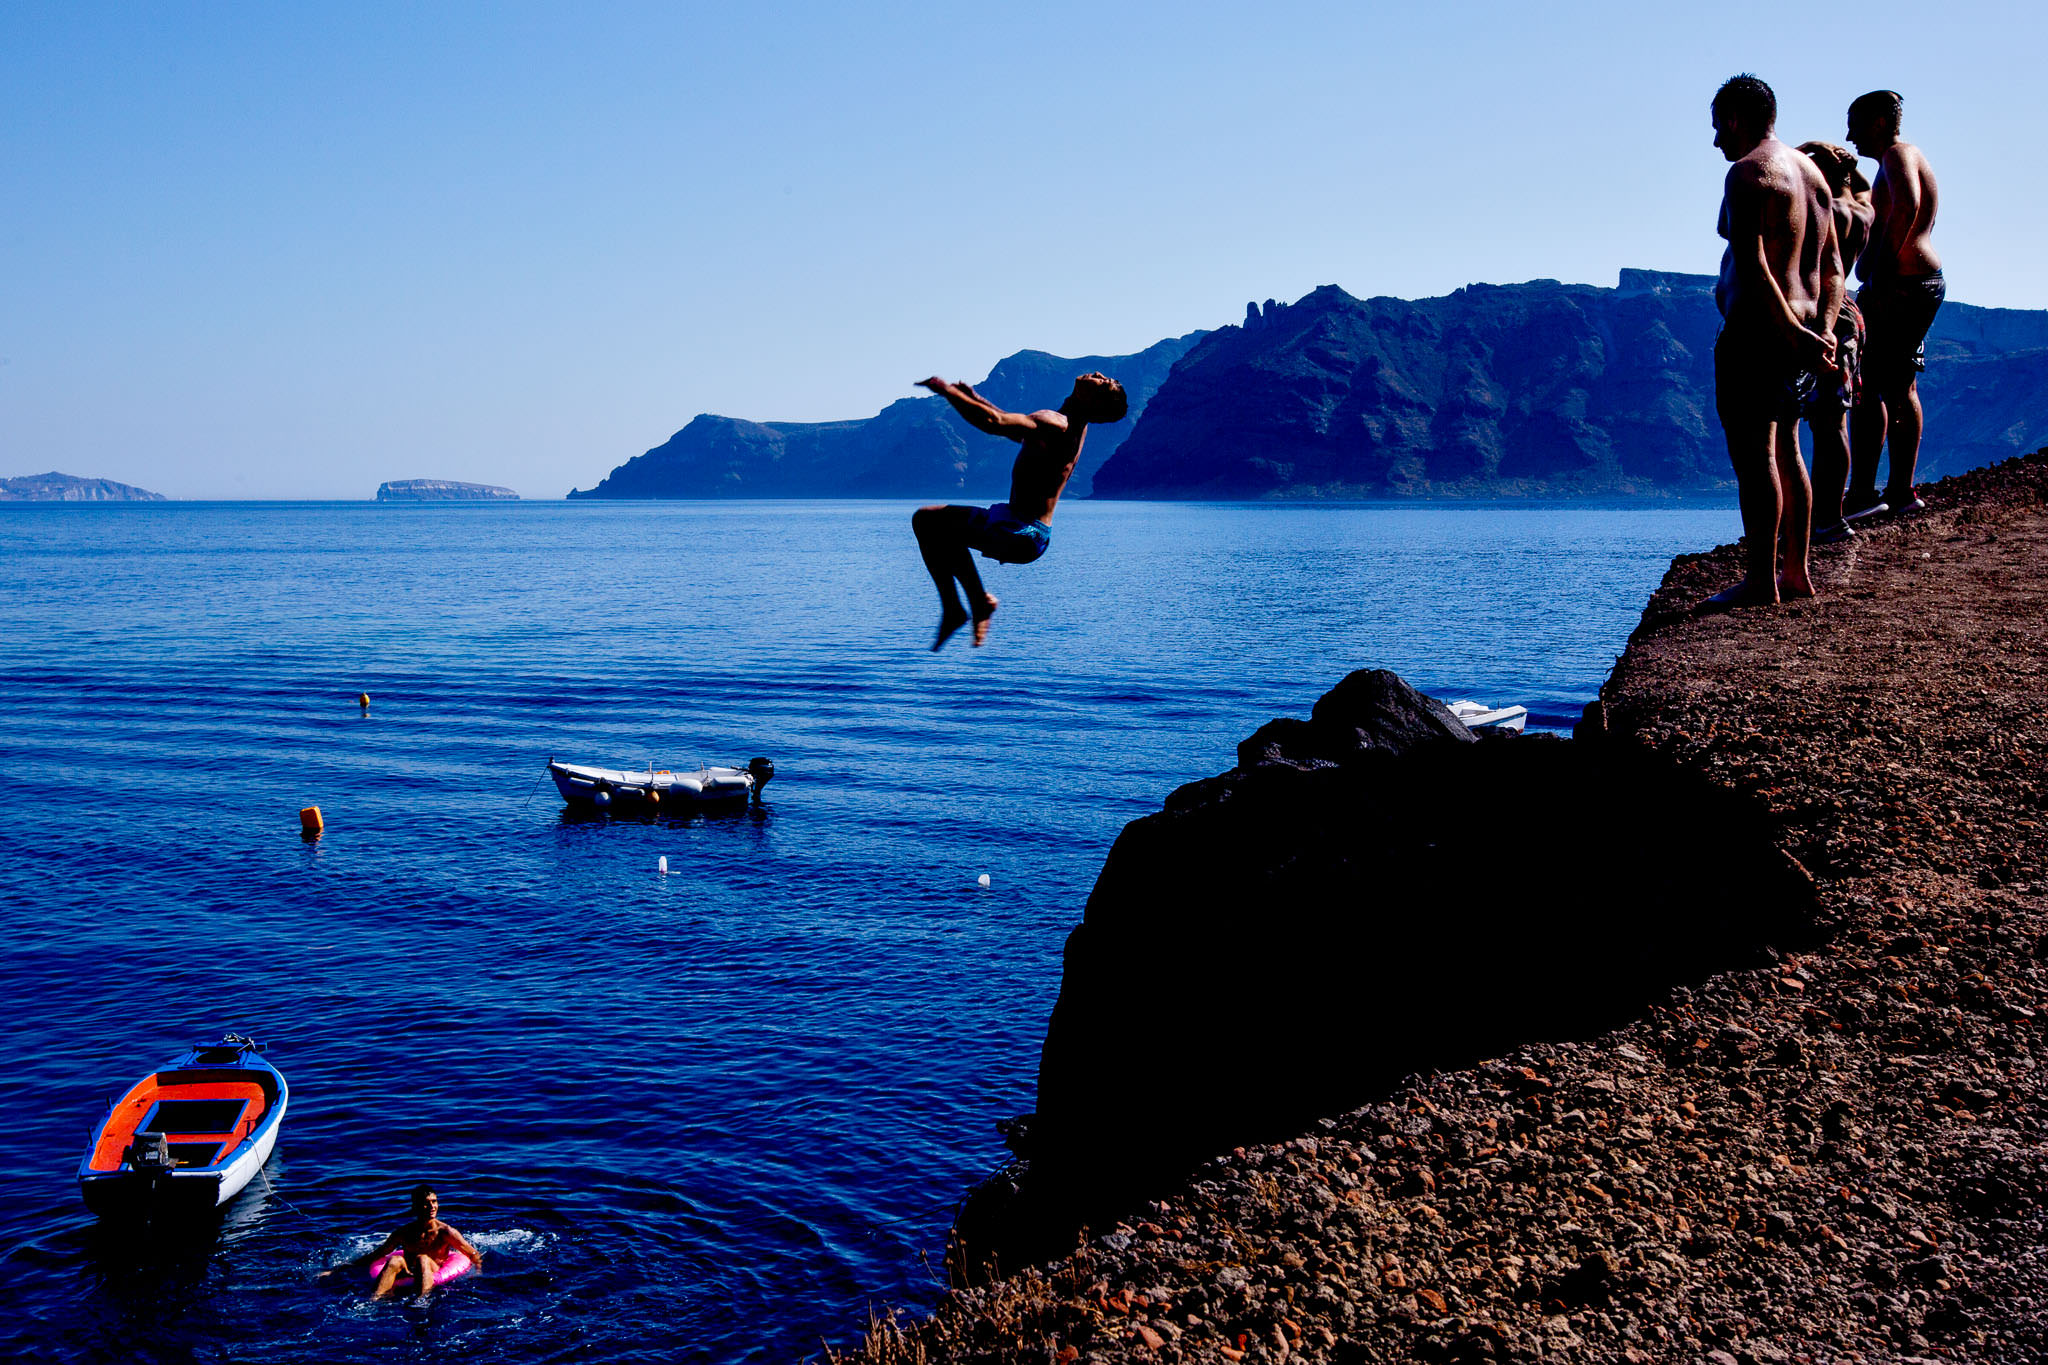 Man flipping off cliff into ocean on Santorini Greece